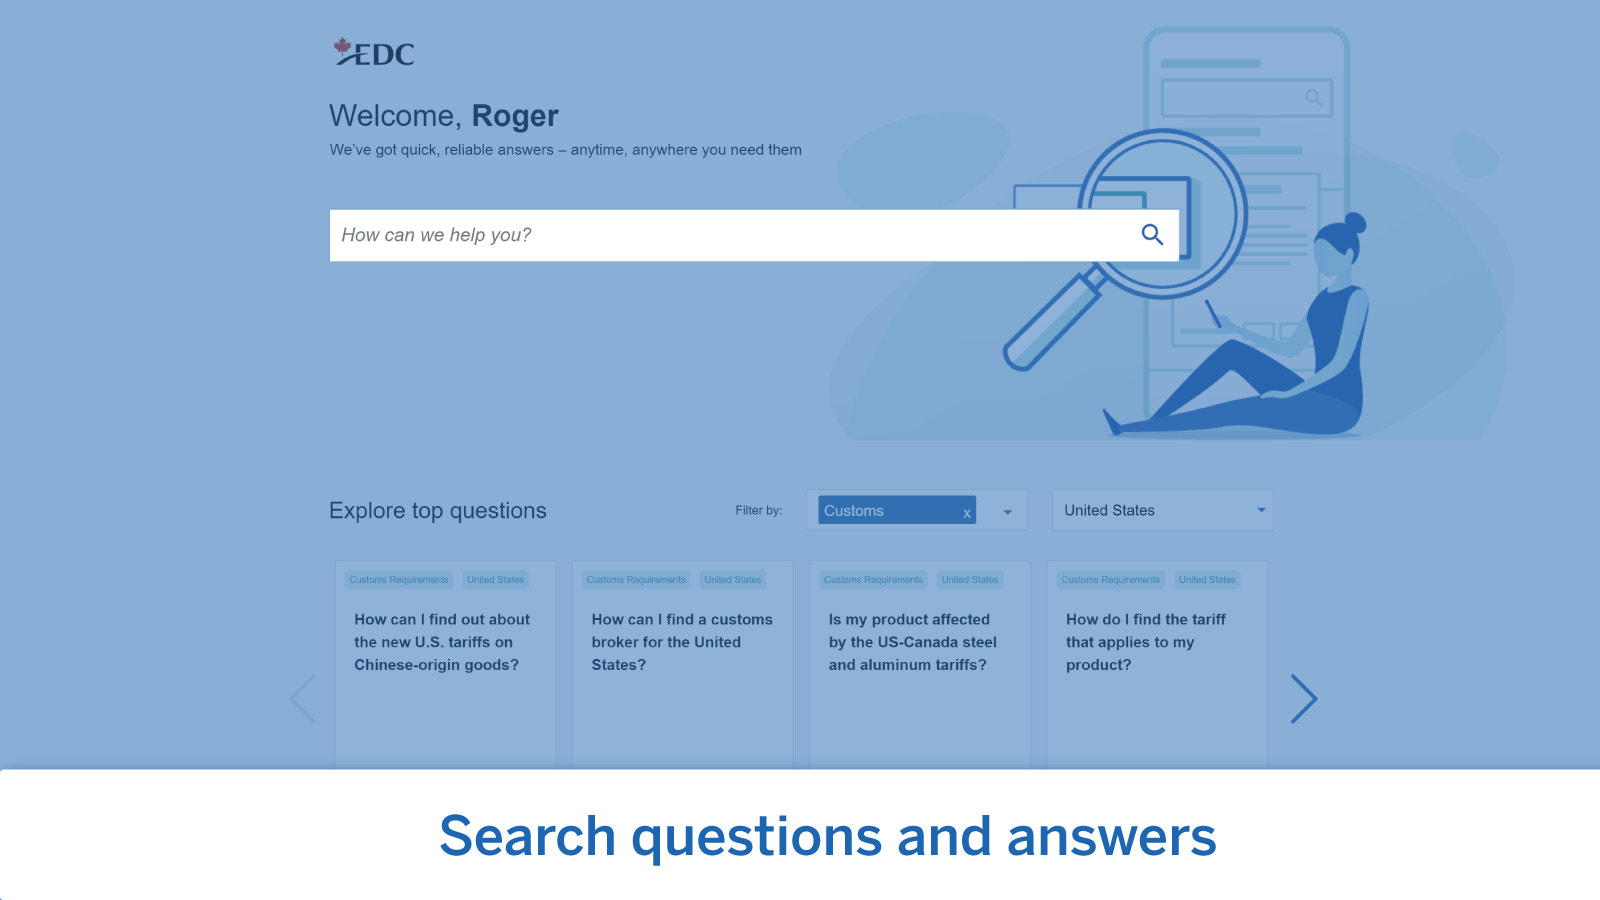 Search questions and answers